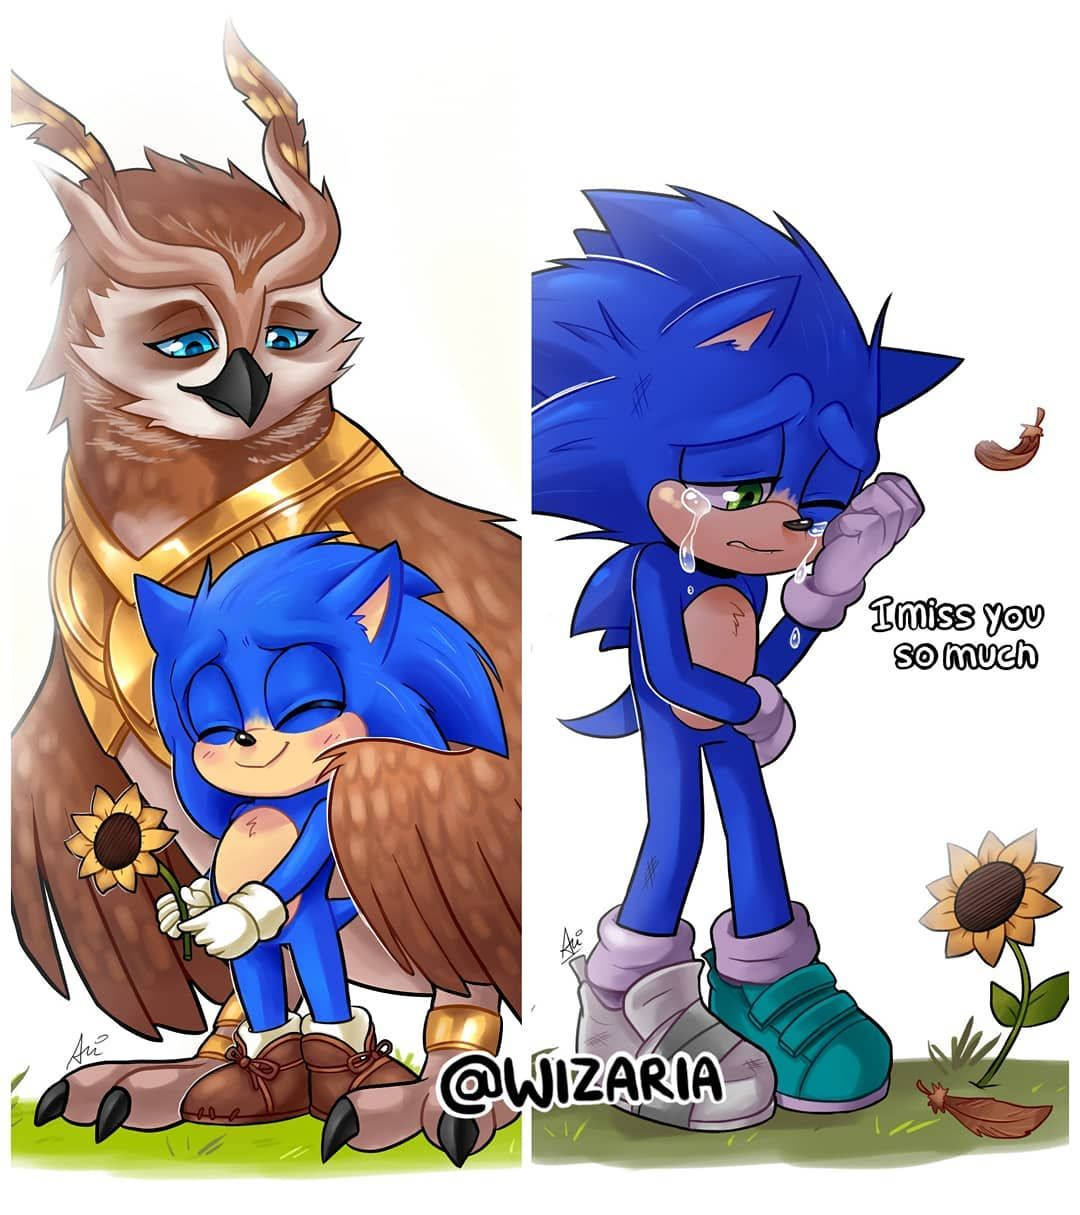 593 Likes 5 Comments Wizaria Ari Wizaria On Instagram Today Is Not An Easy Day For A Lot Of People In 2020 Sonic Funny Sonic Fan Characters Hedgehog Art